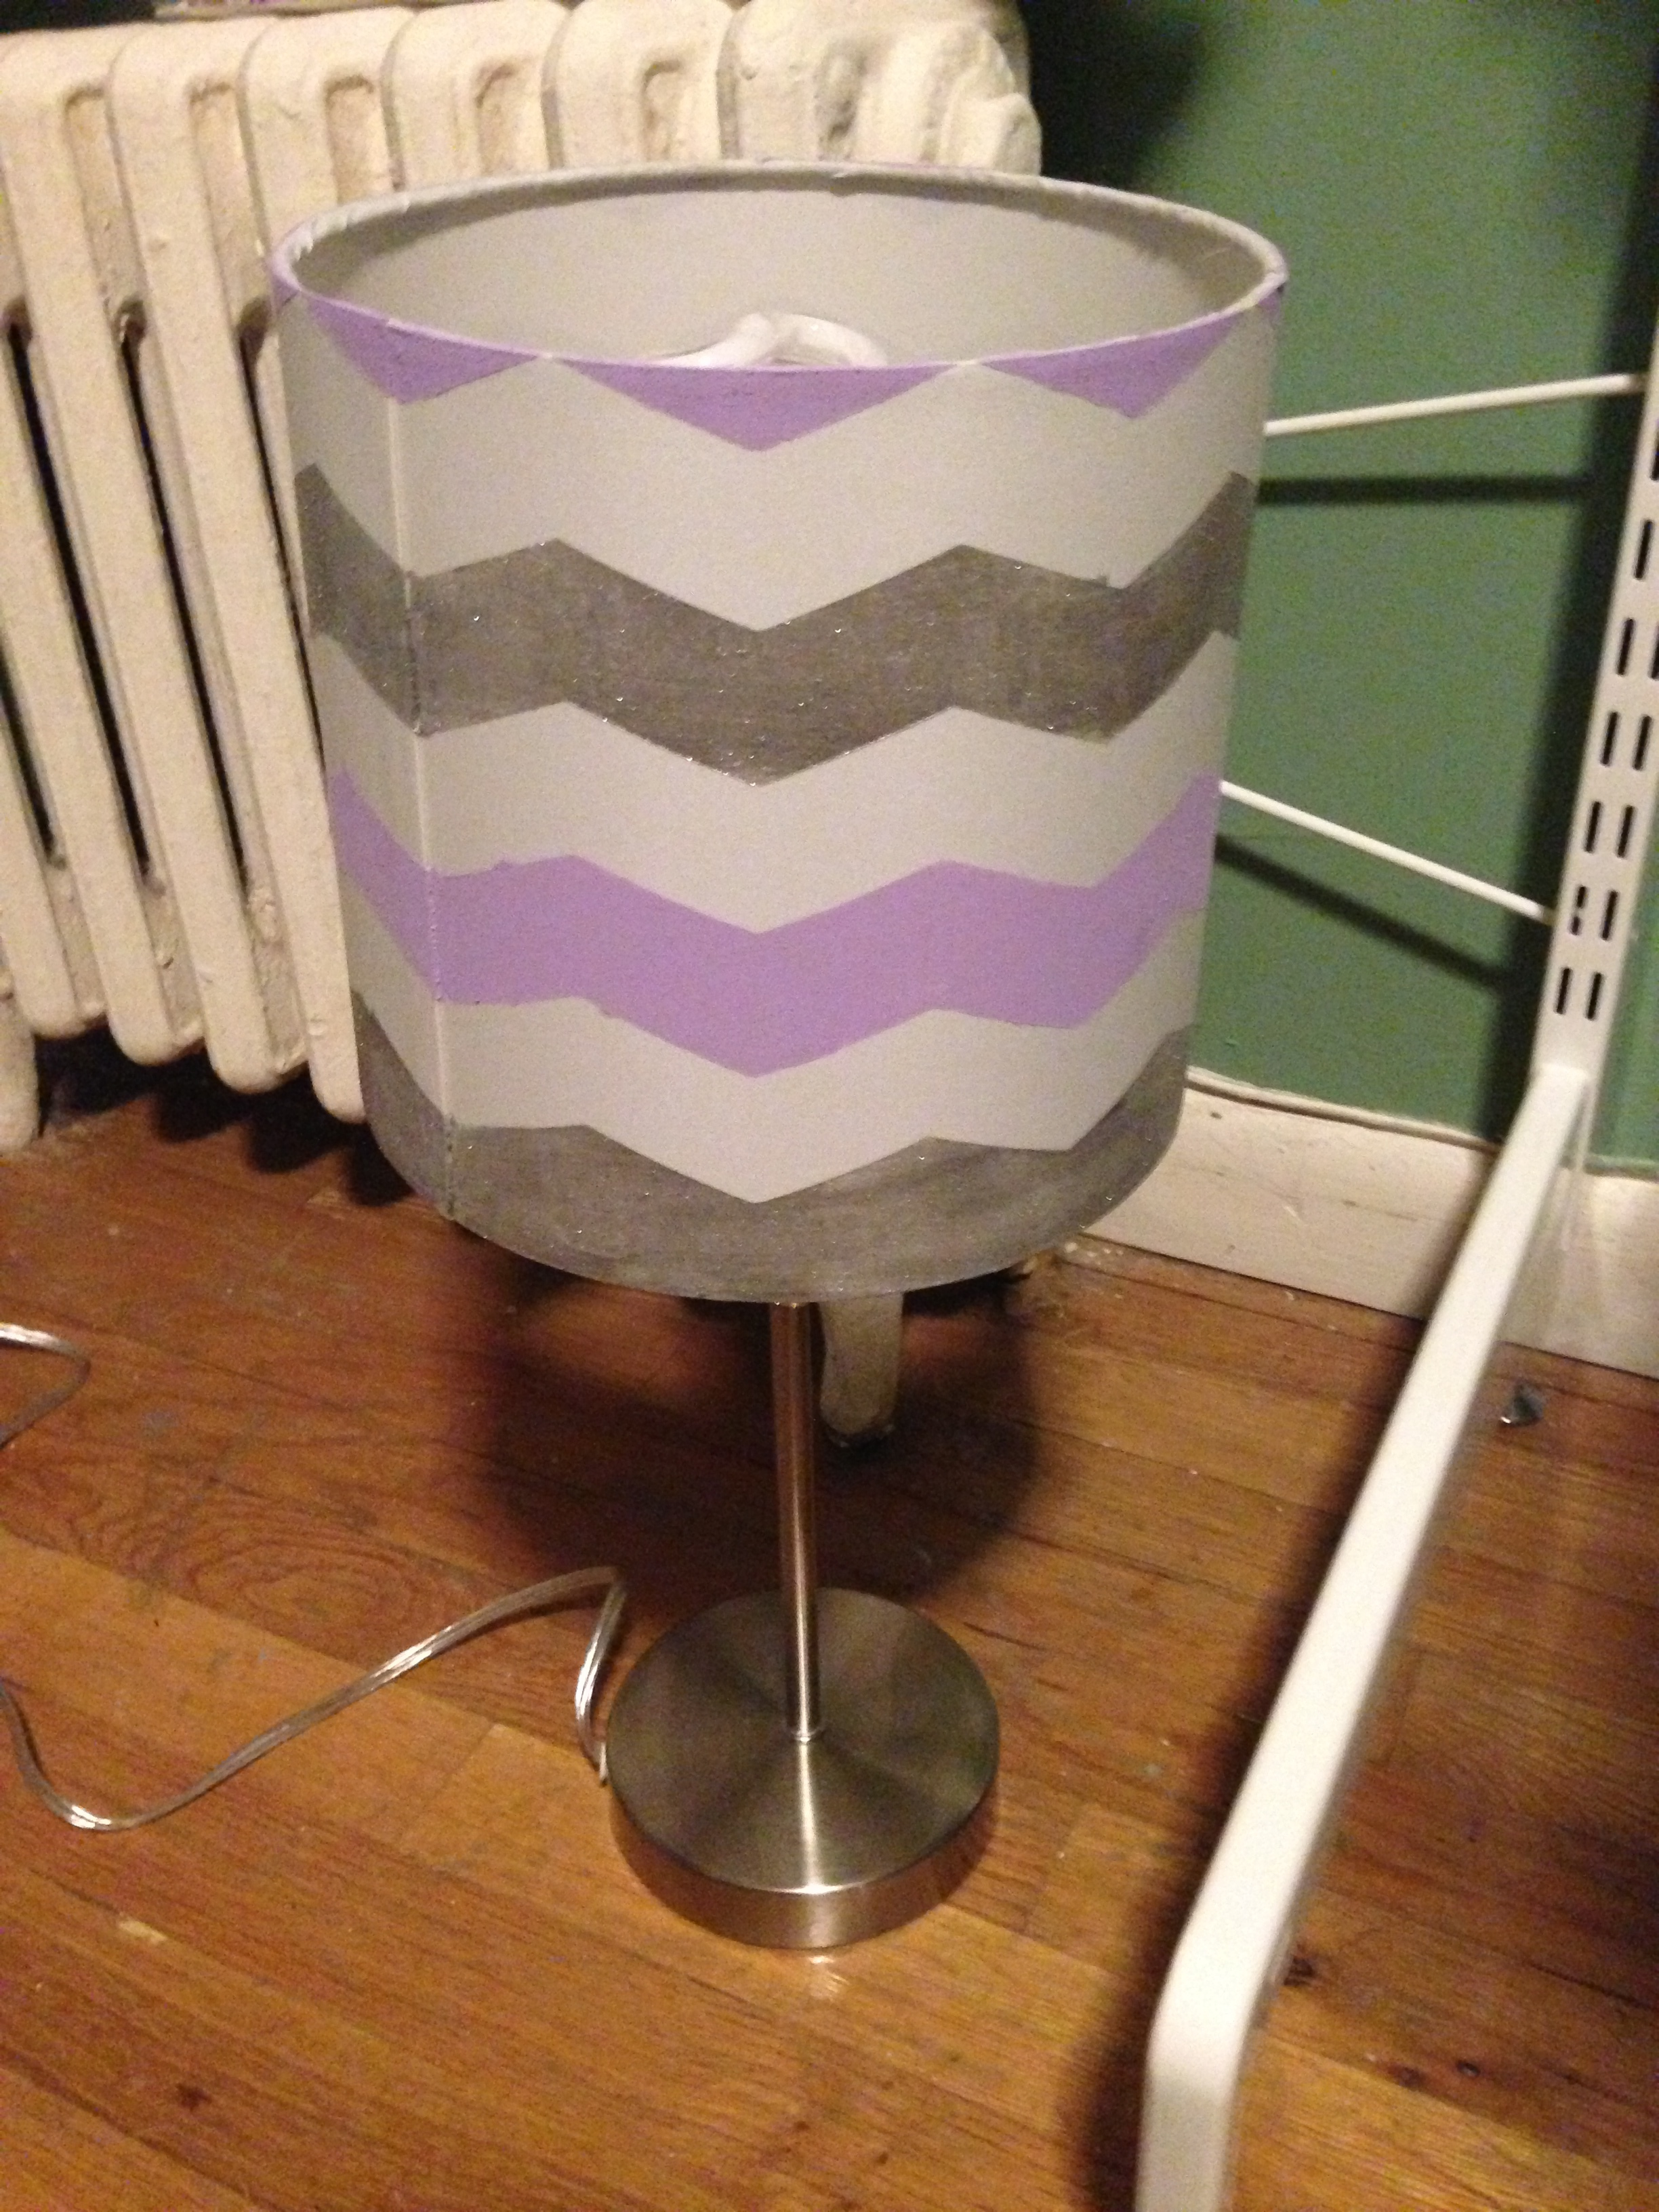 And painted her lamp